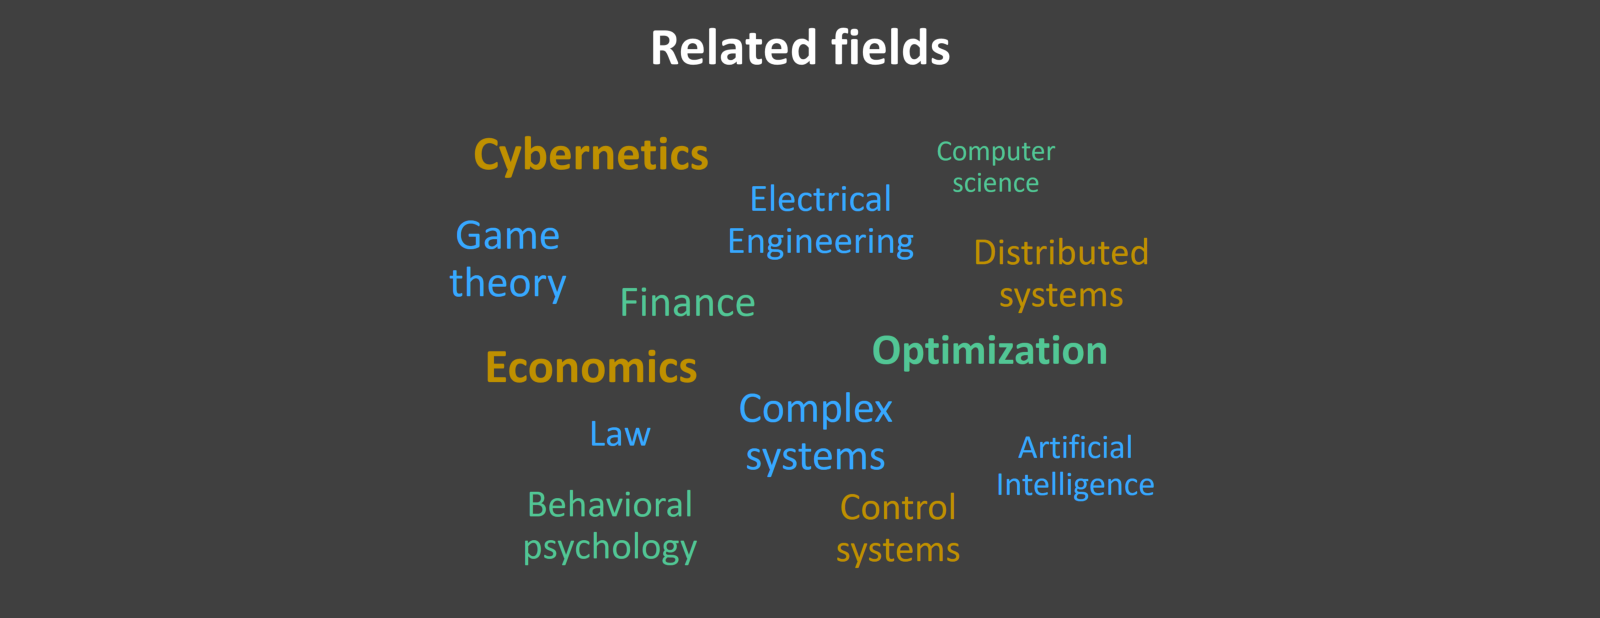 Towards A Practice Of Token Engineering Ocean Protocol When Voltage Is Changed Electrical Stack Exchange These Include Everything From To Complex Systems Economics Ai I List Few Below And Course Many Them Have Roots In